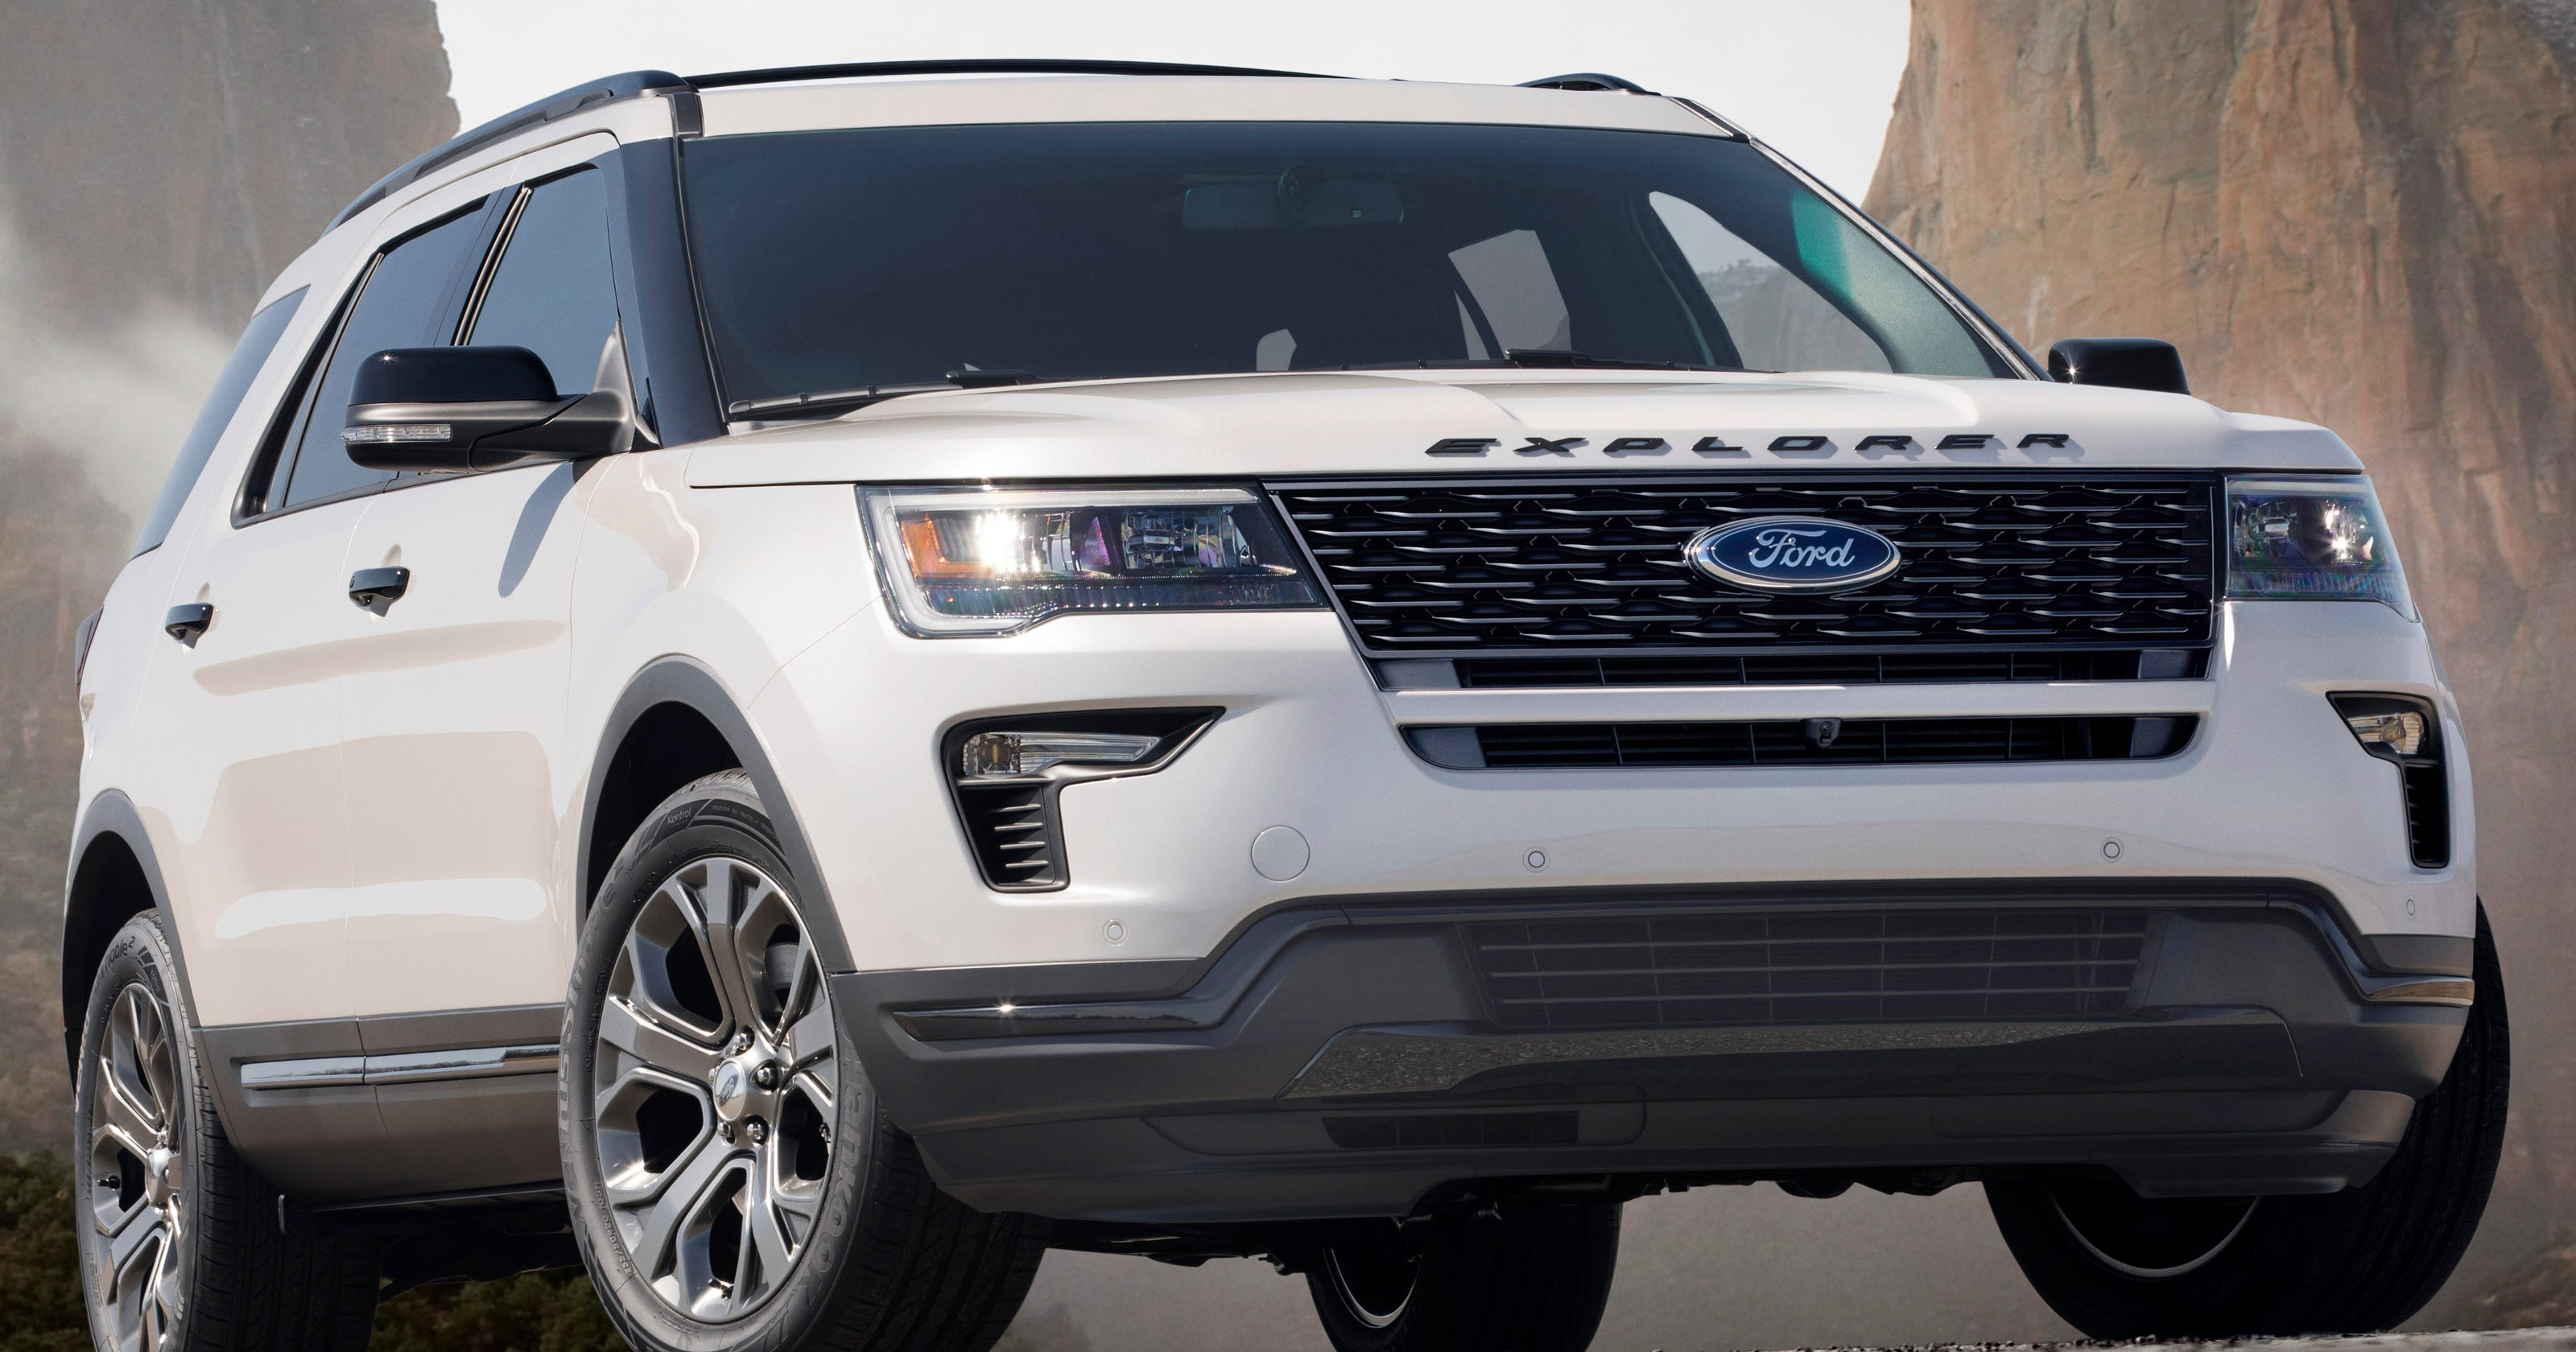 ford updates looks of the 2018 explorer suv with new grille. Black Bedroom Furniture Sets. Home Design Ideas